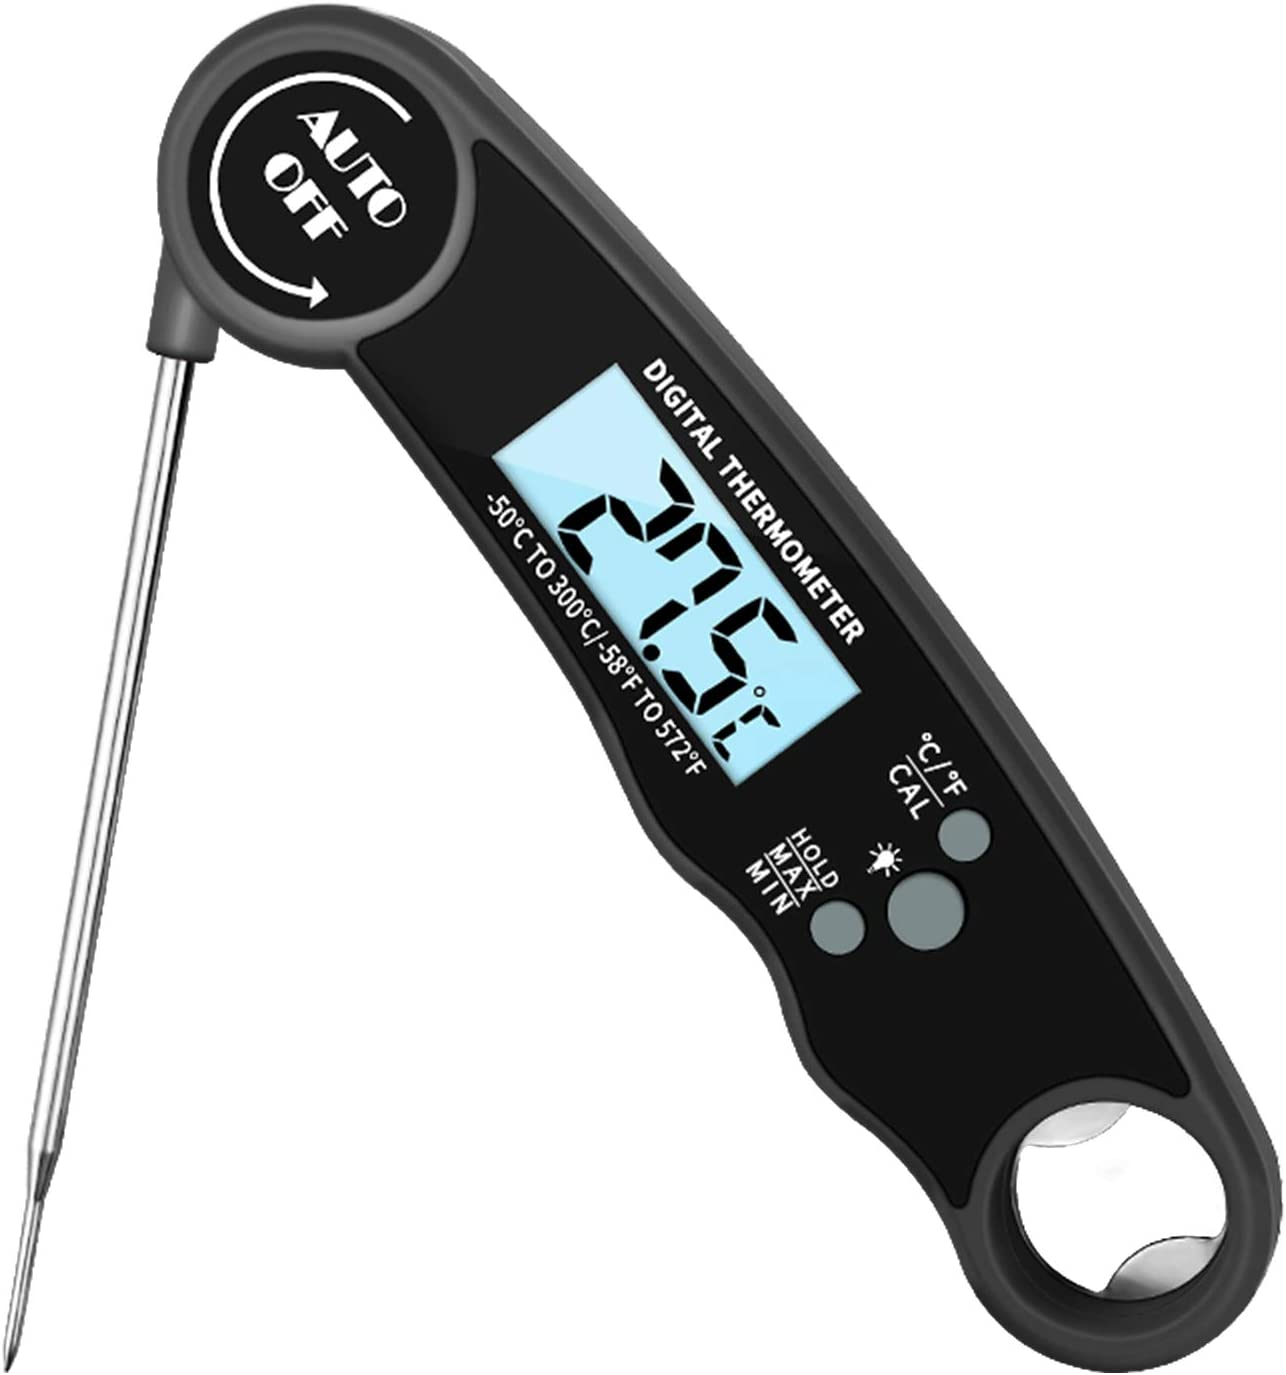 Waterproof Digital Instant Read Meat Thermometer, Probe Food Thermometer with LCD Backlight Magnet for Kitchen and Outdoor Cooking BBQ Oven Safe Grilling (Black)